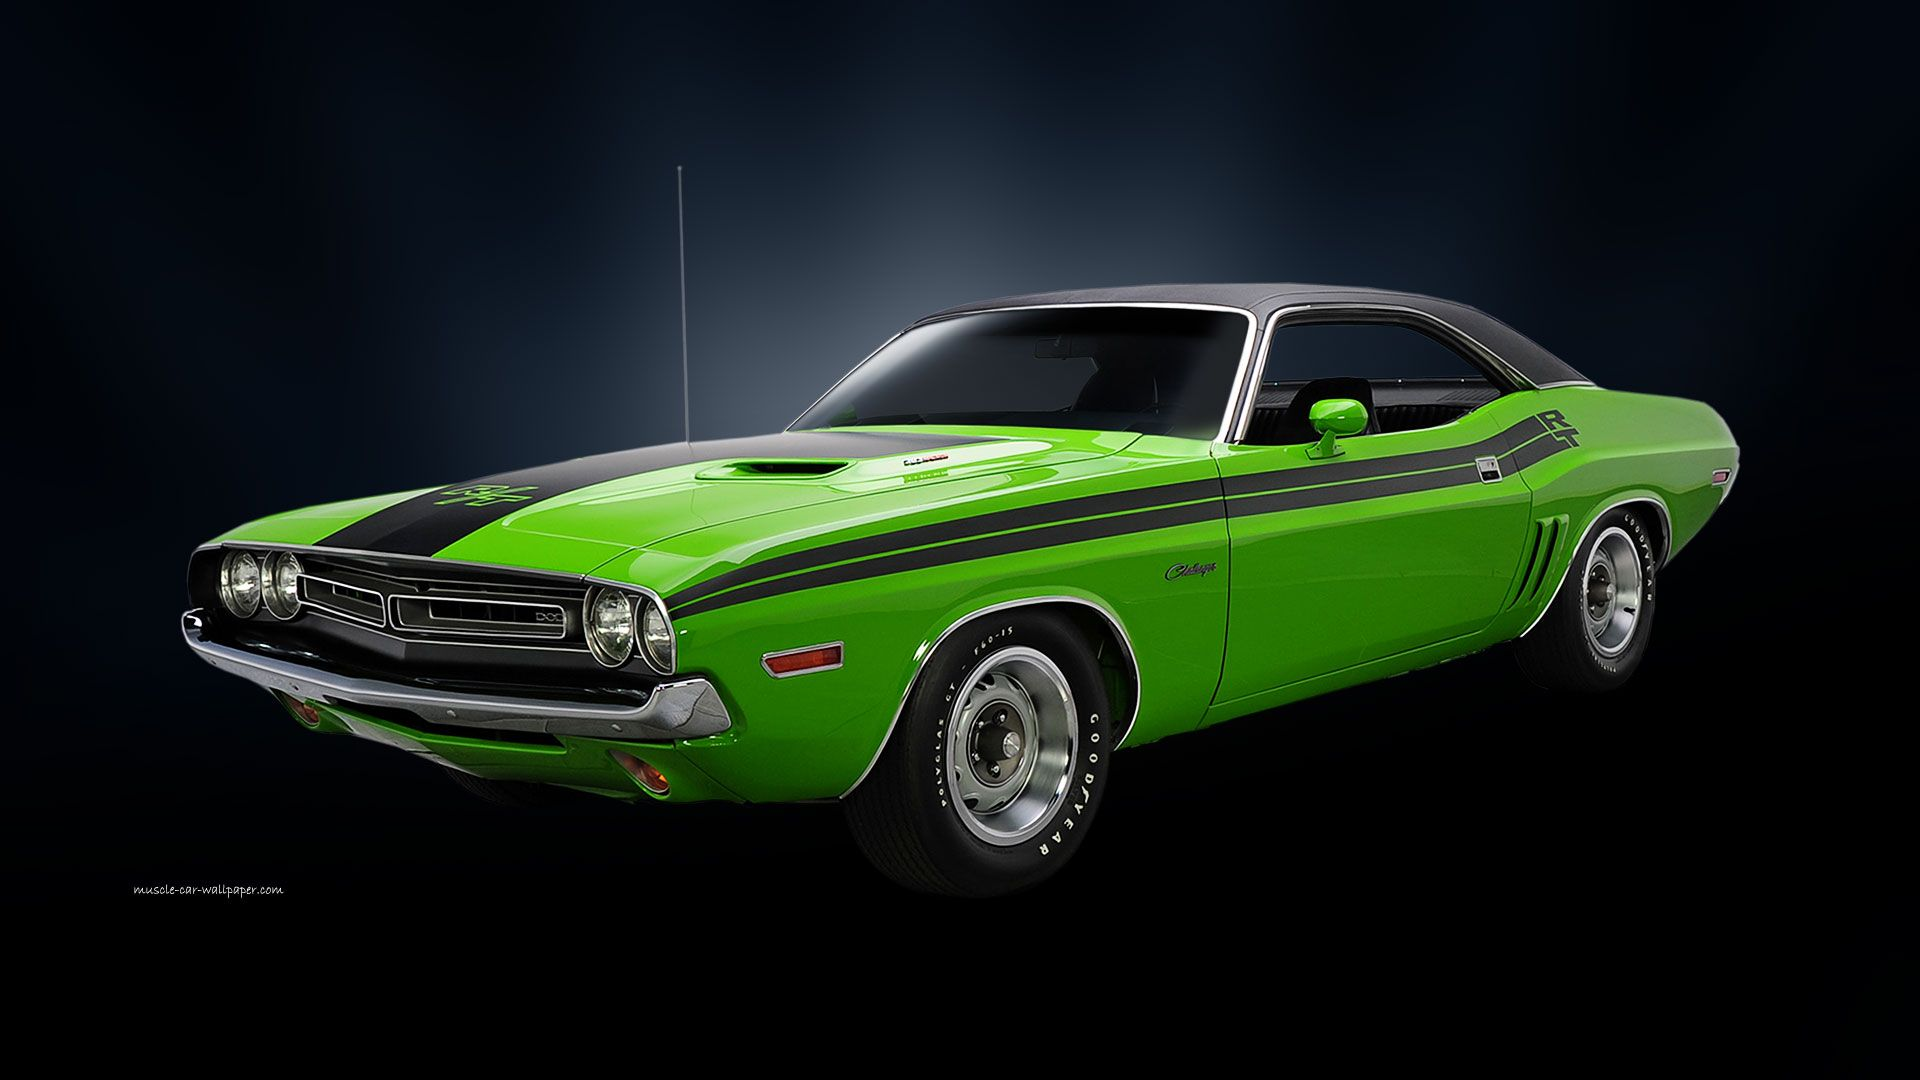 Classic Dodge Muscle Cars Wallpapers - Top Free Classic ...